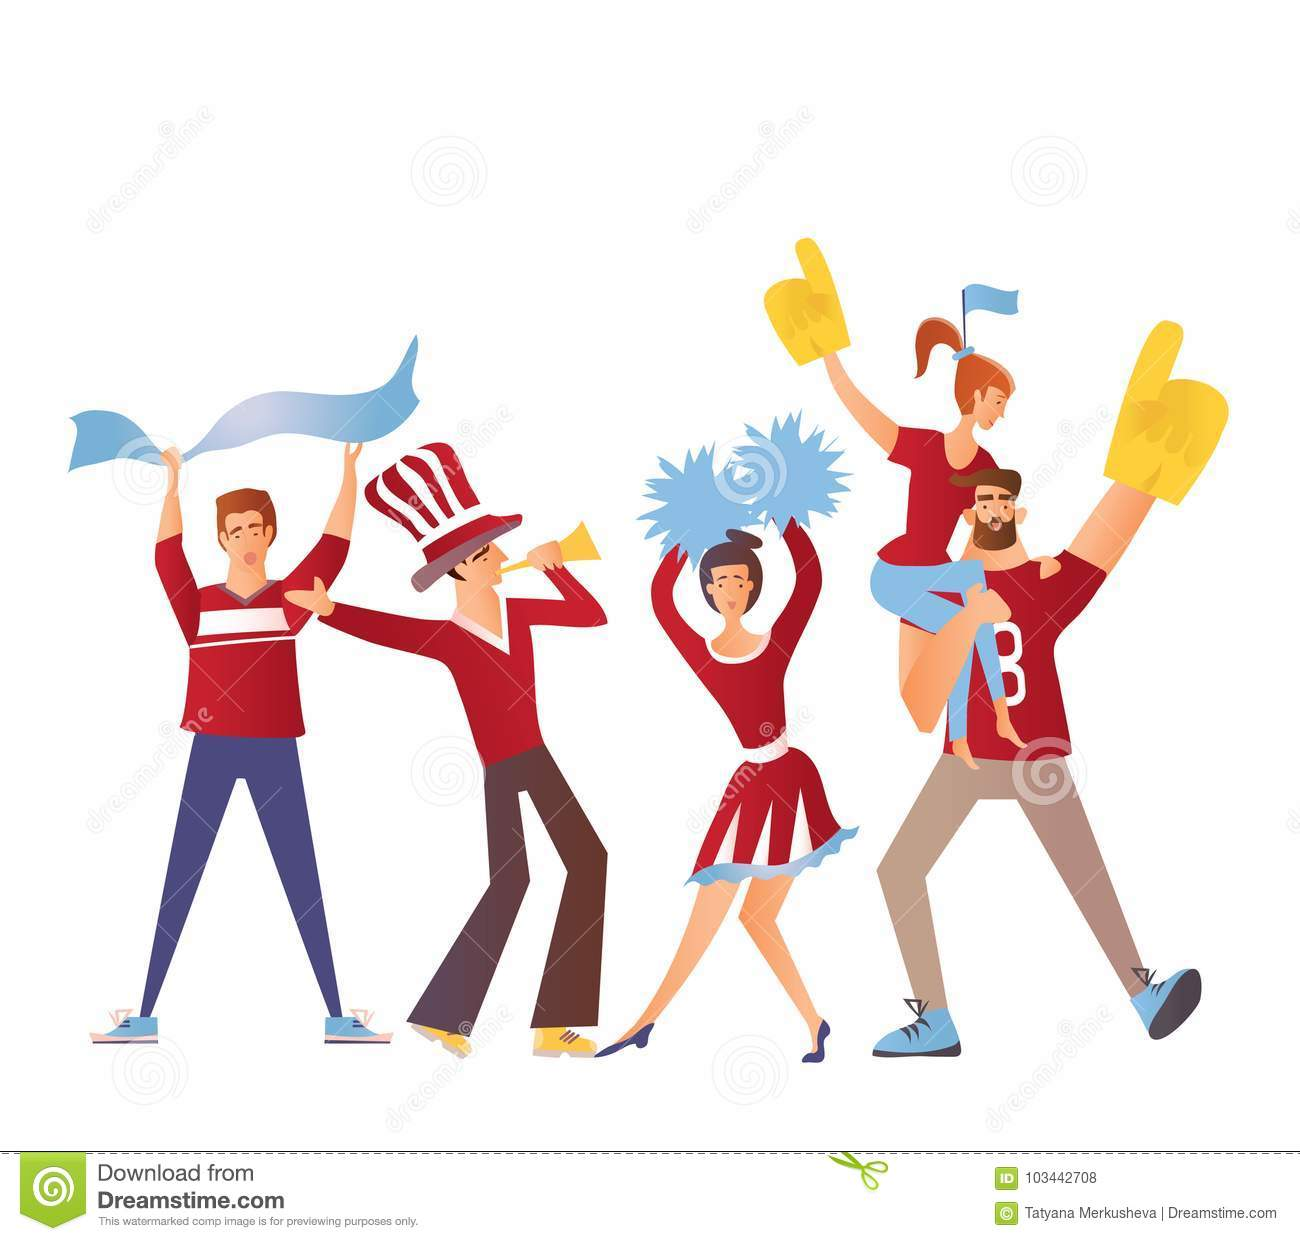 Group of sport fans with attributes cheering for the team. Flat vector illustration on a white background. Isolated